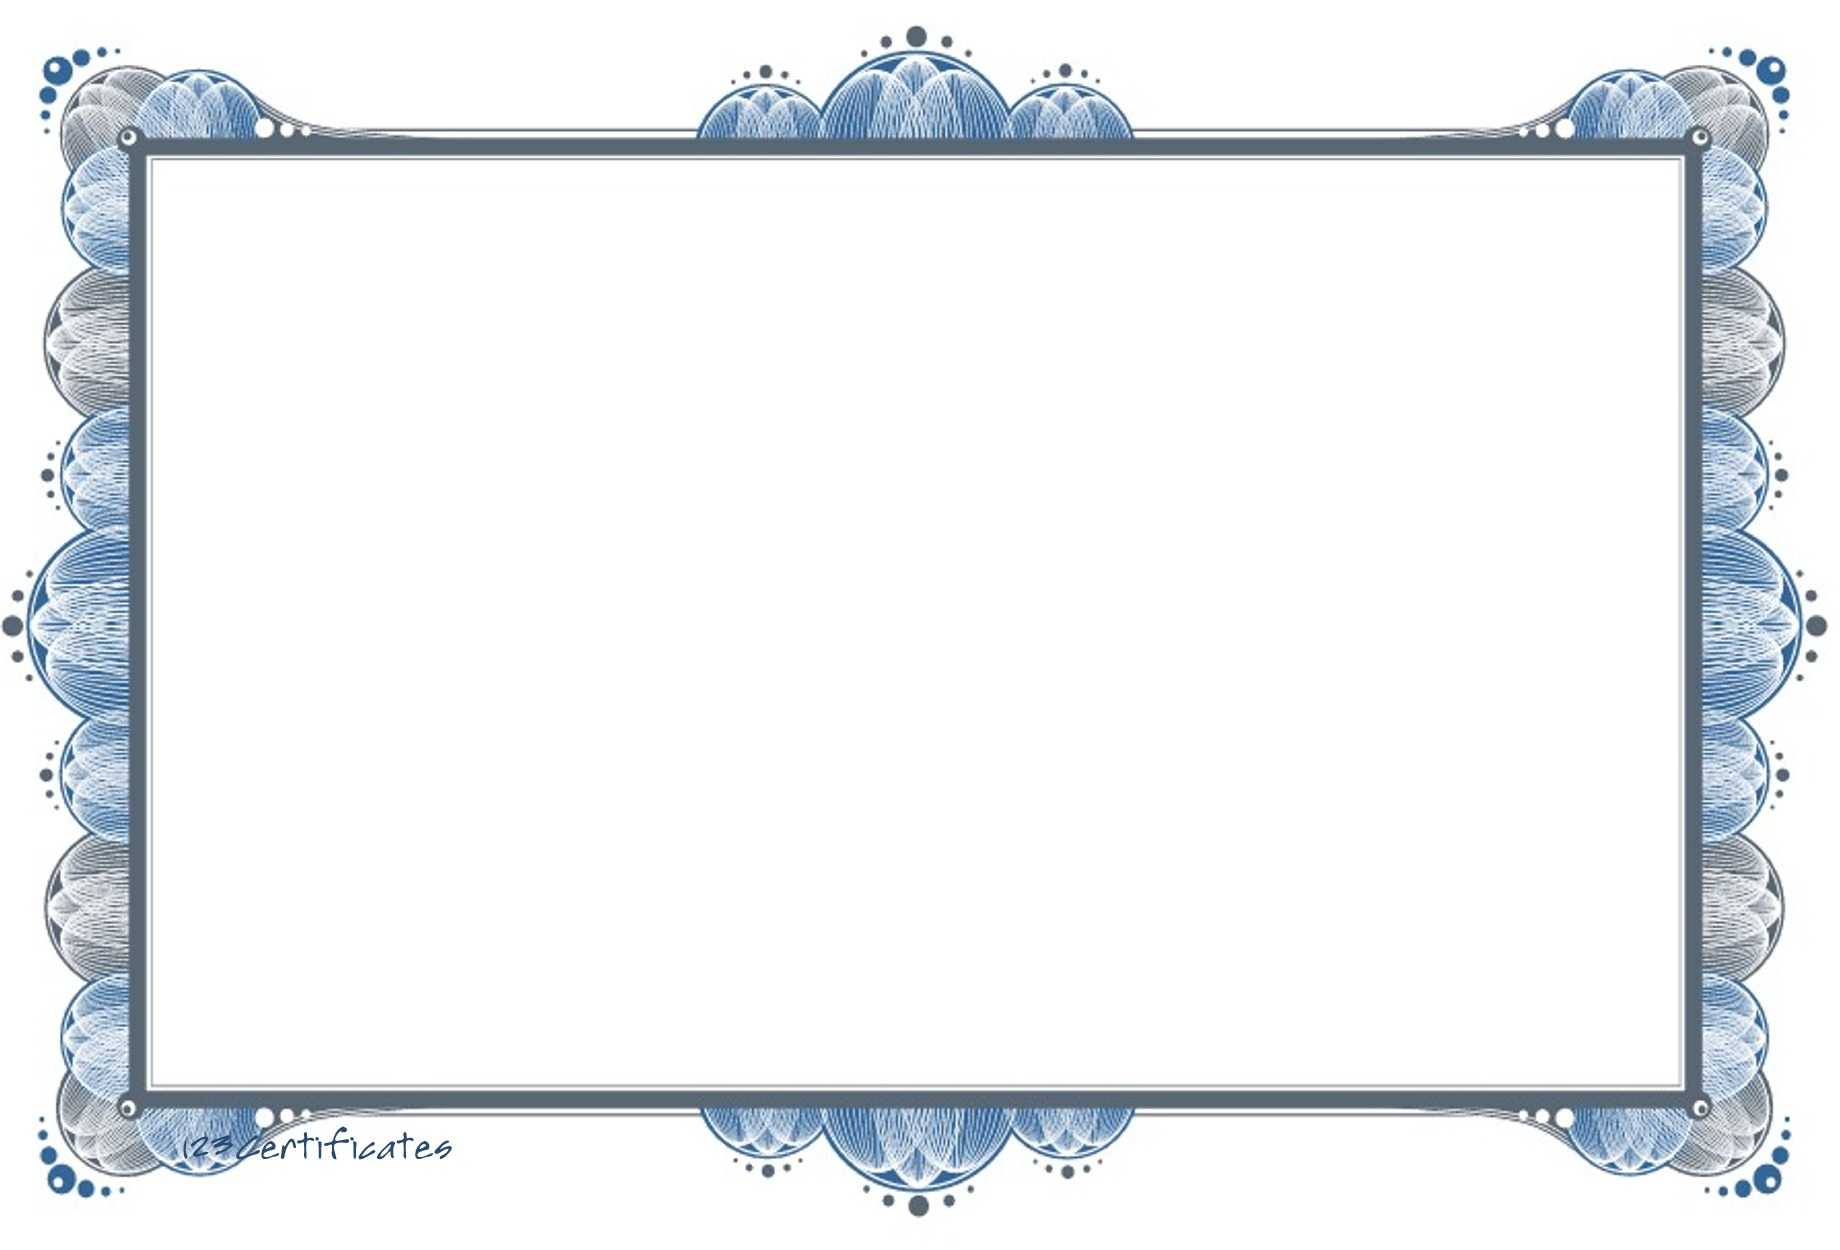 Displaying Images For - Free Printable Blank Certificate Borders...